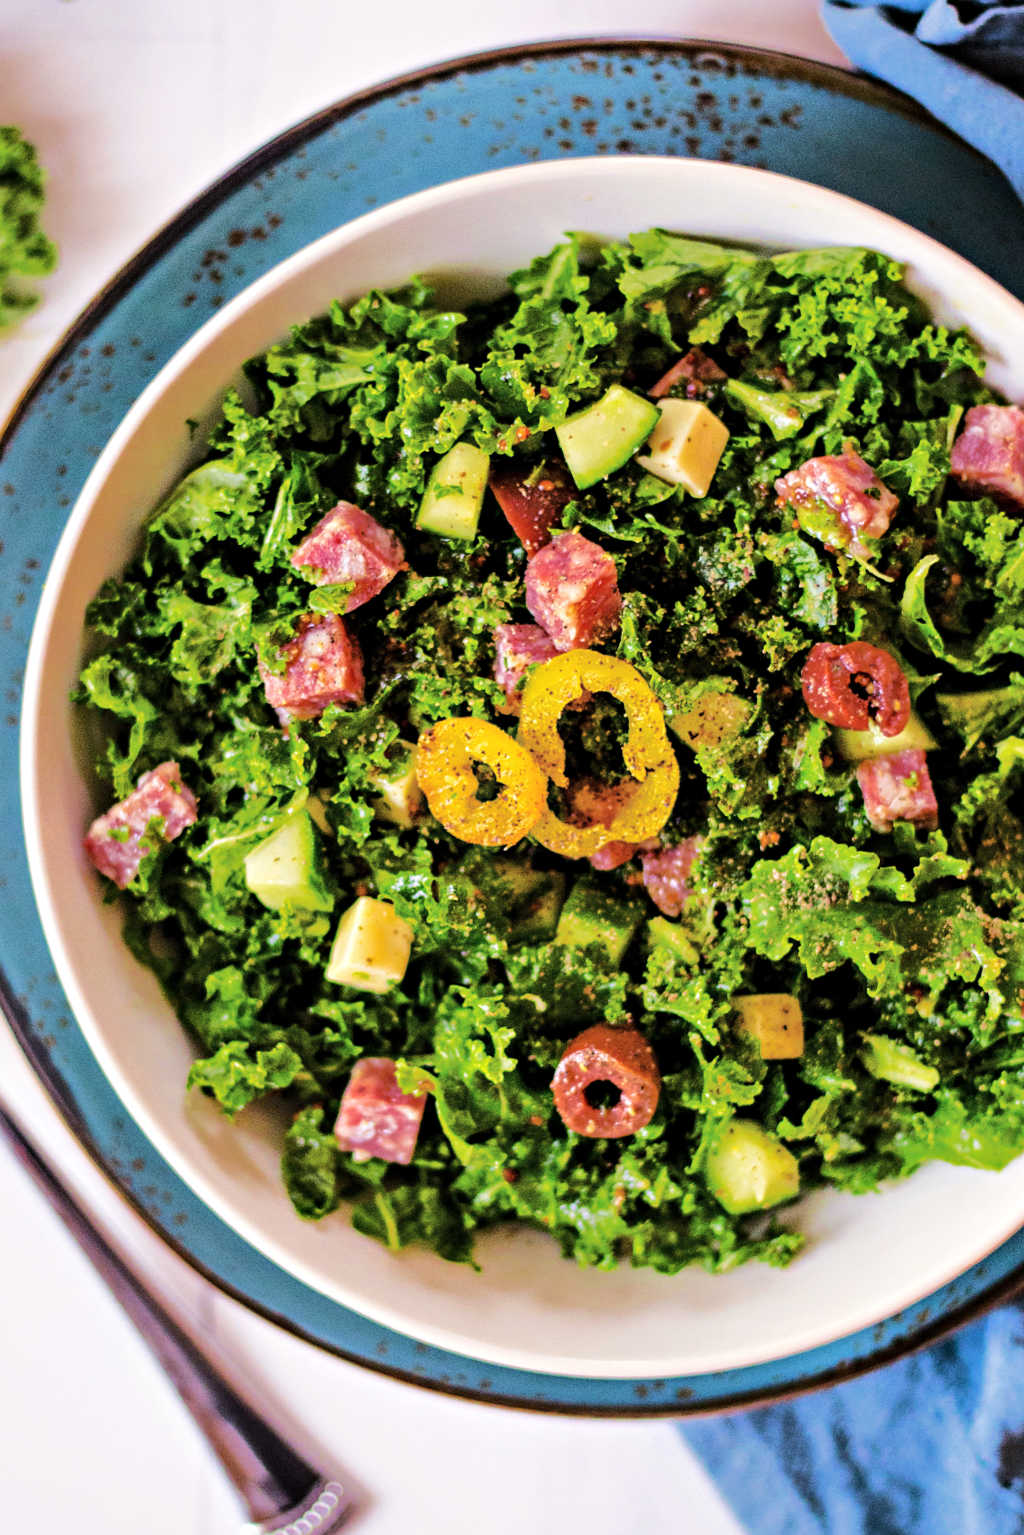 chopped kale salad in a white bowl on a blue plate